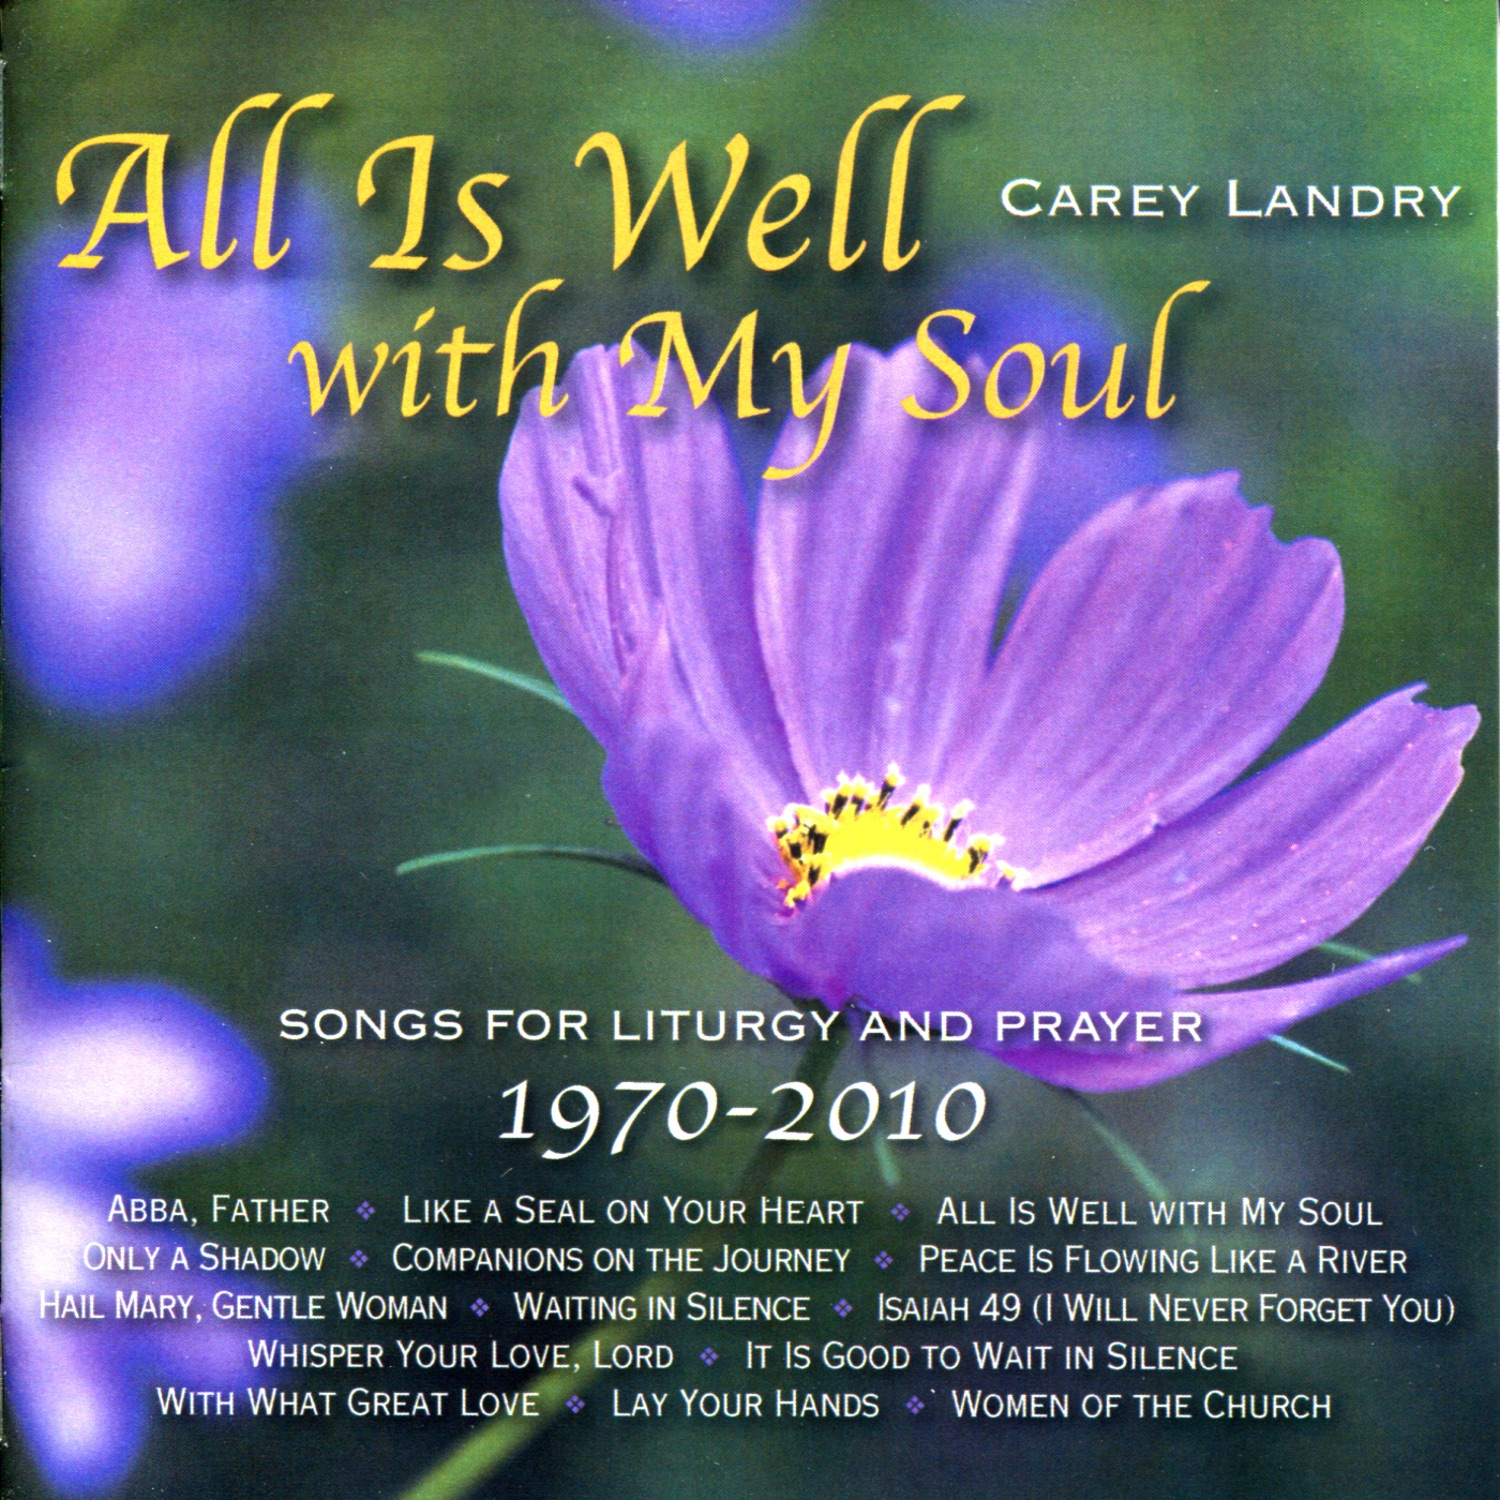 All Is Well with My Soul - Songs for Liturgy and Prayer 1970-2010